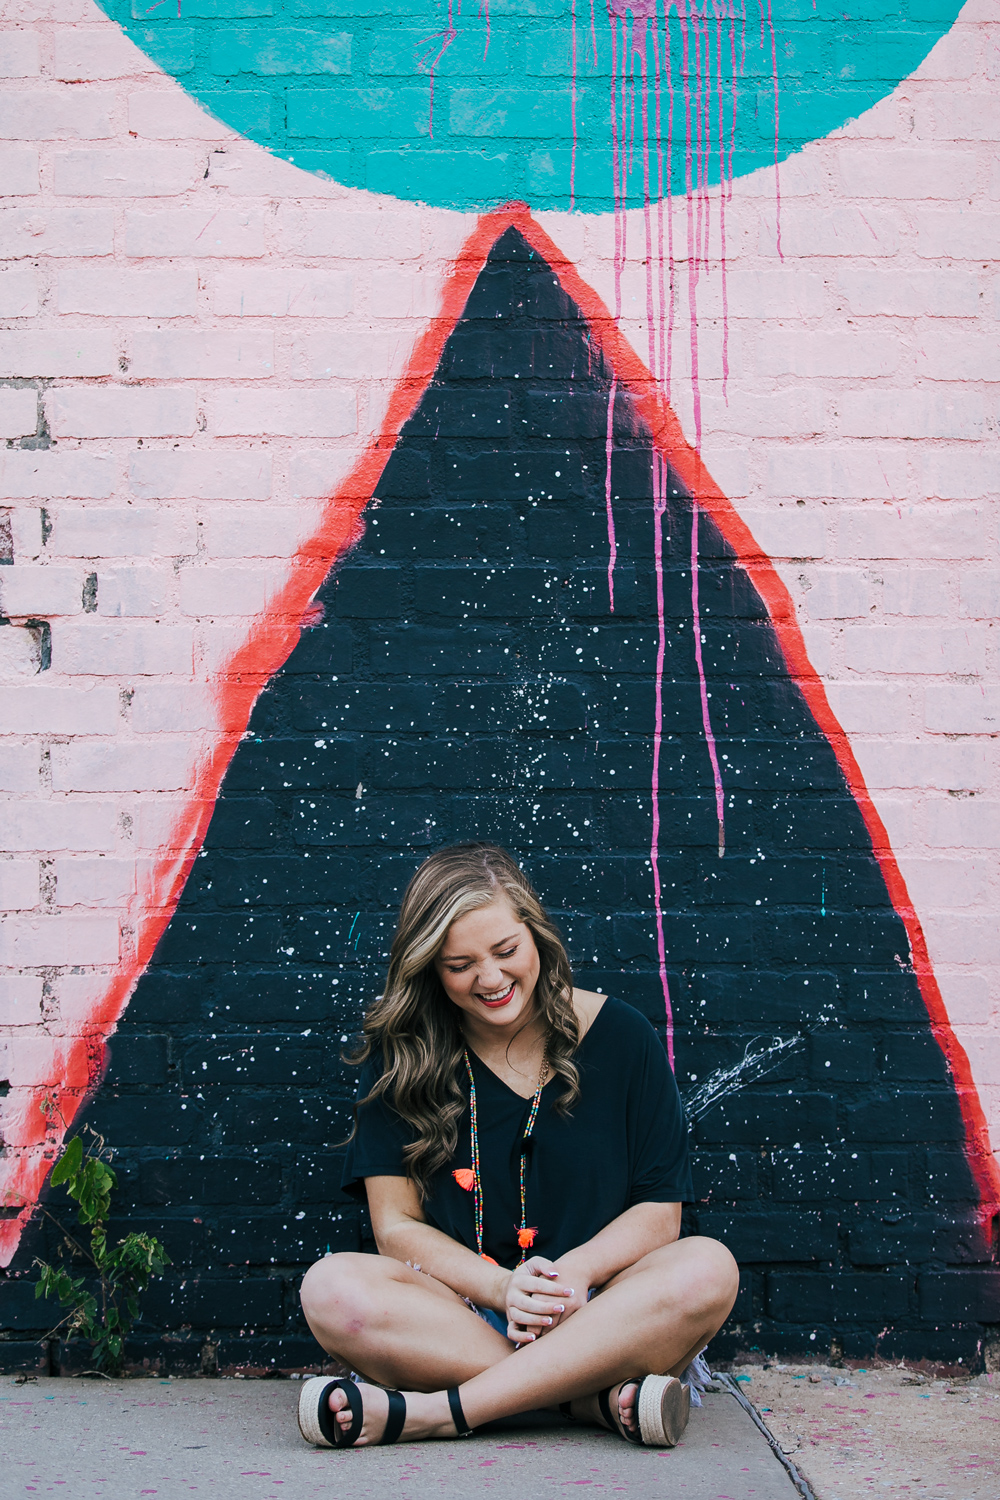 Oklahoma high school senior girl sitting in front of triangle painted on brick in Automobile Alley in OKC by Amanda Lynn.